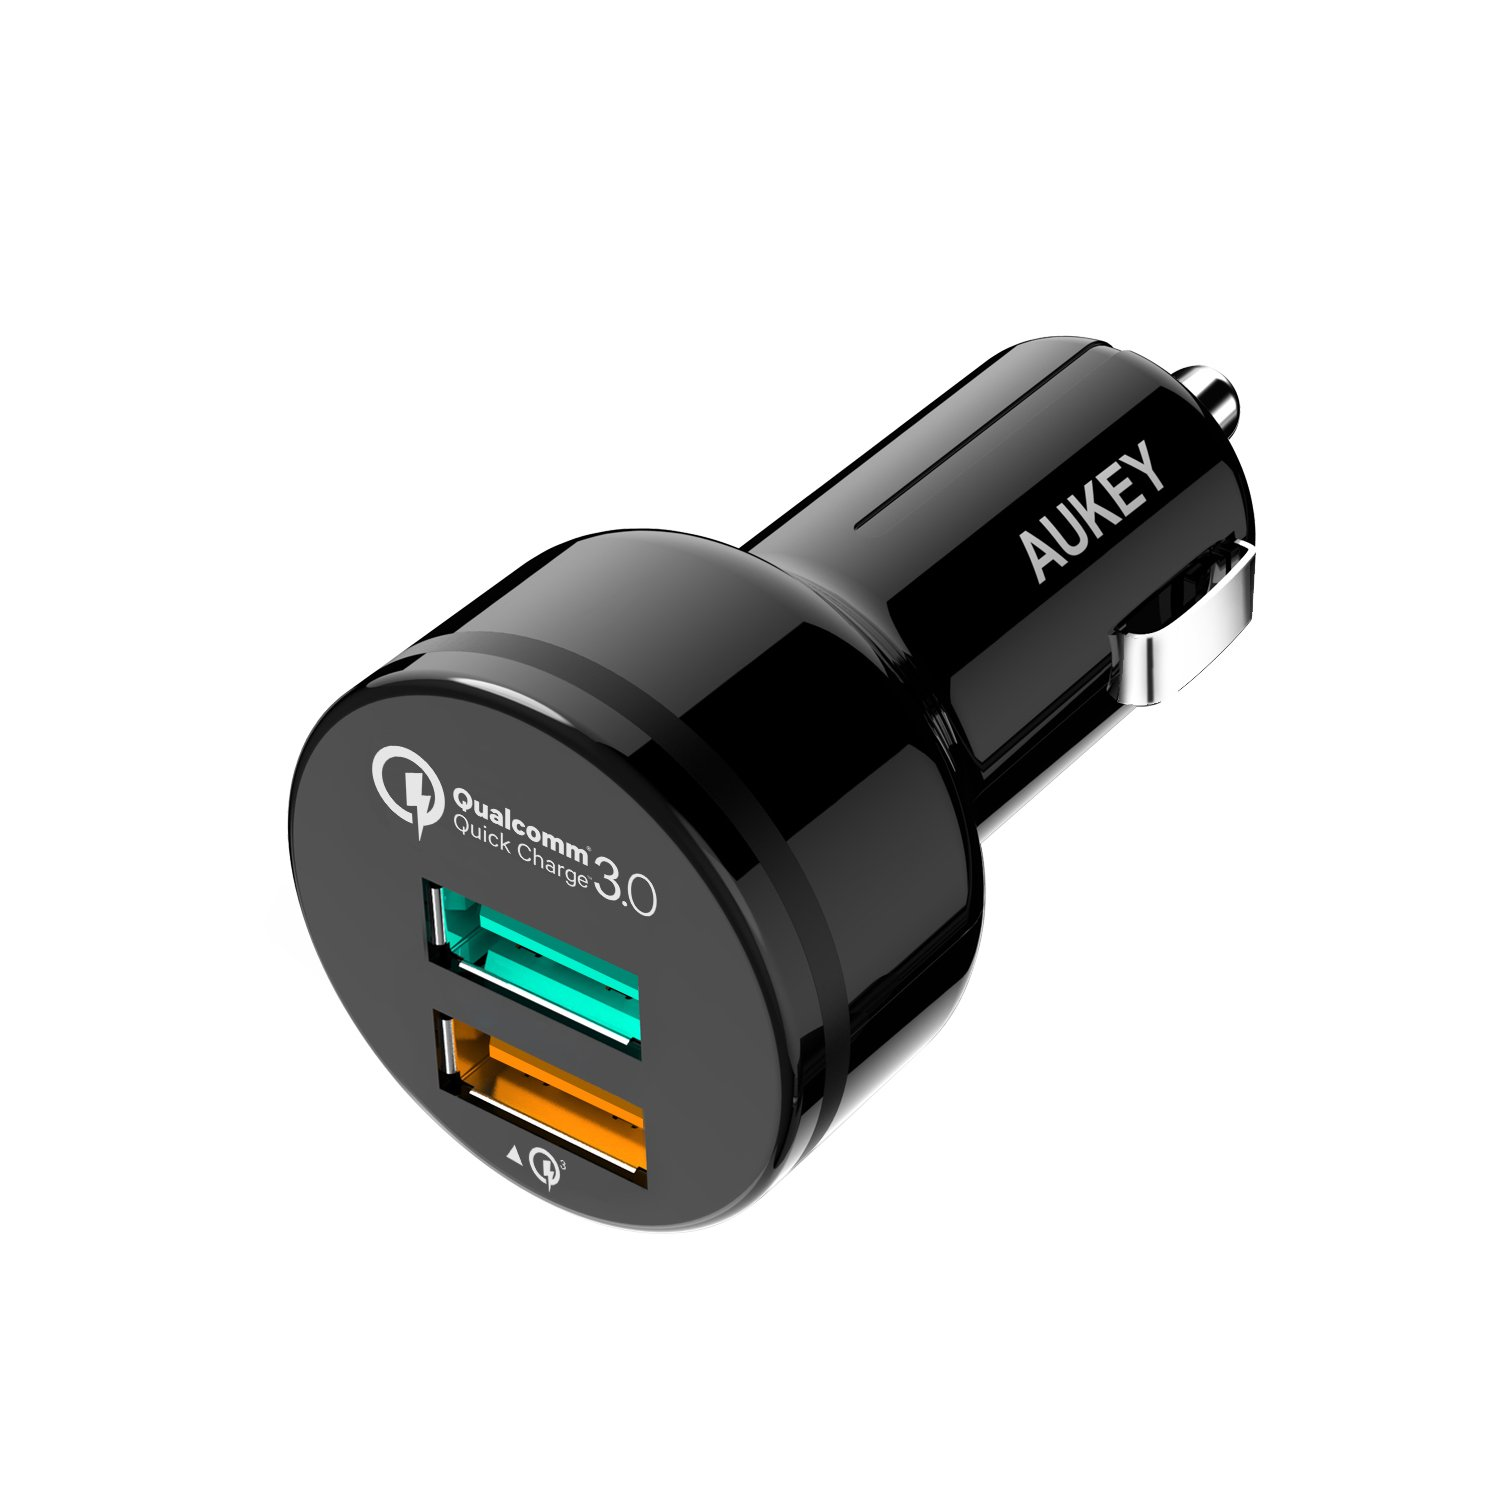 AUKEY Car Charger with 31.5W Output, Quick Charge 3.0 & 5V/2.4A Ports for Samsung Galaxy Note8 / S9, iPhone X / 8 / Plus and More | Qualcomm Certified